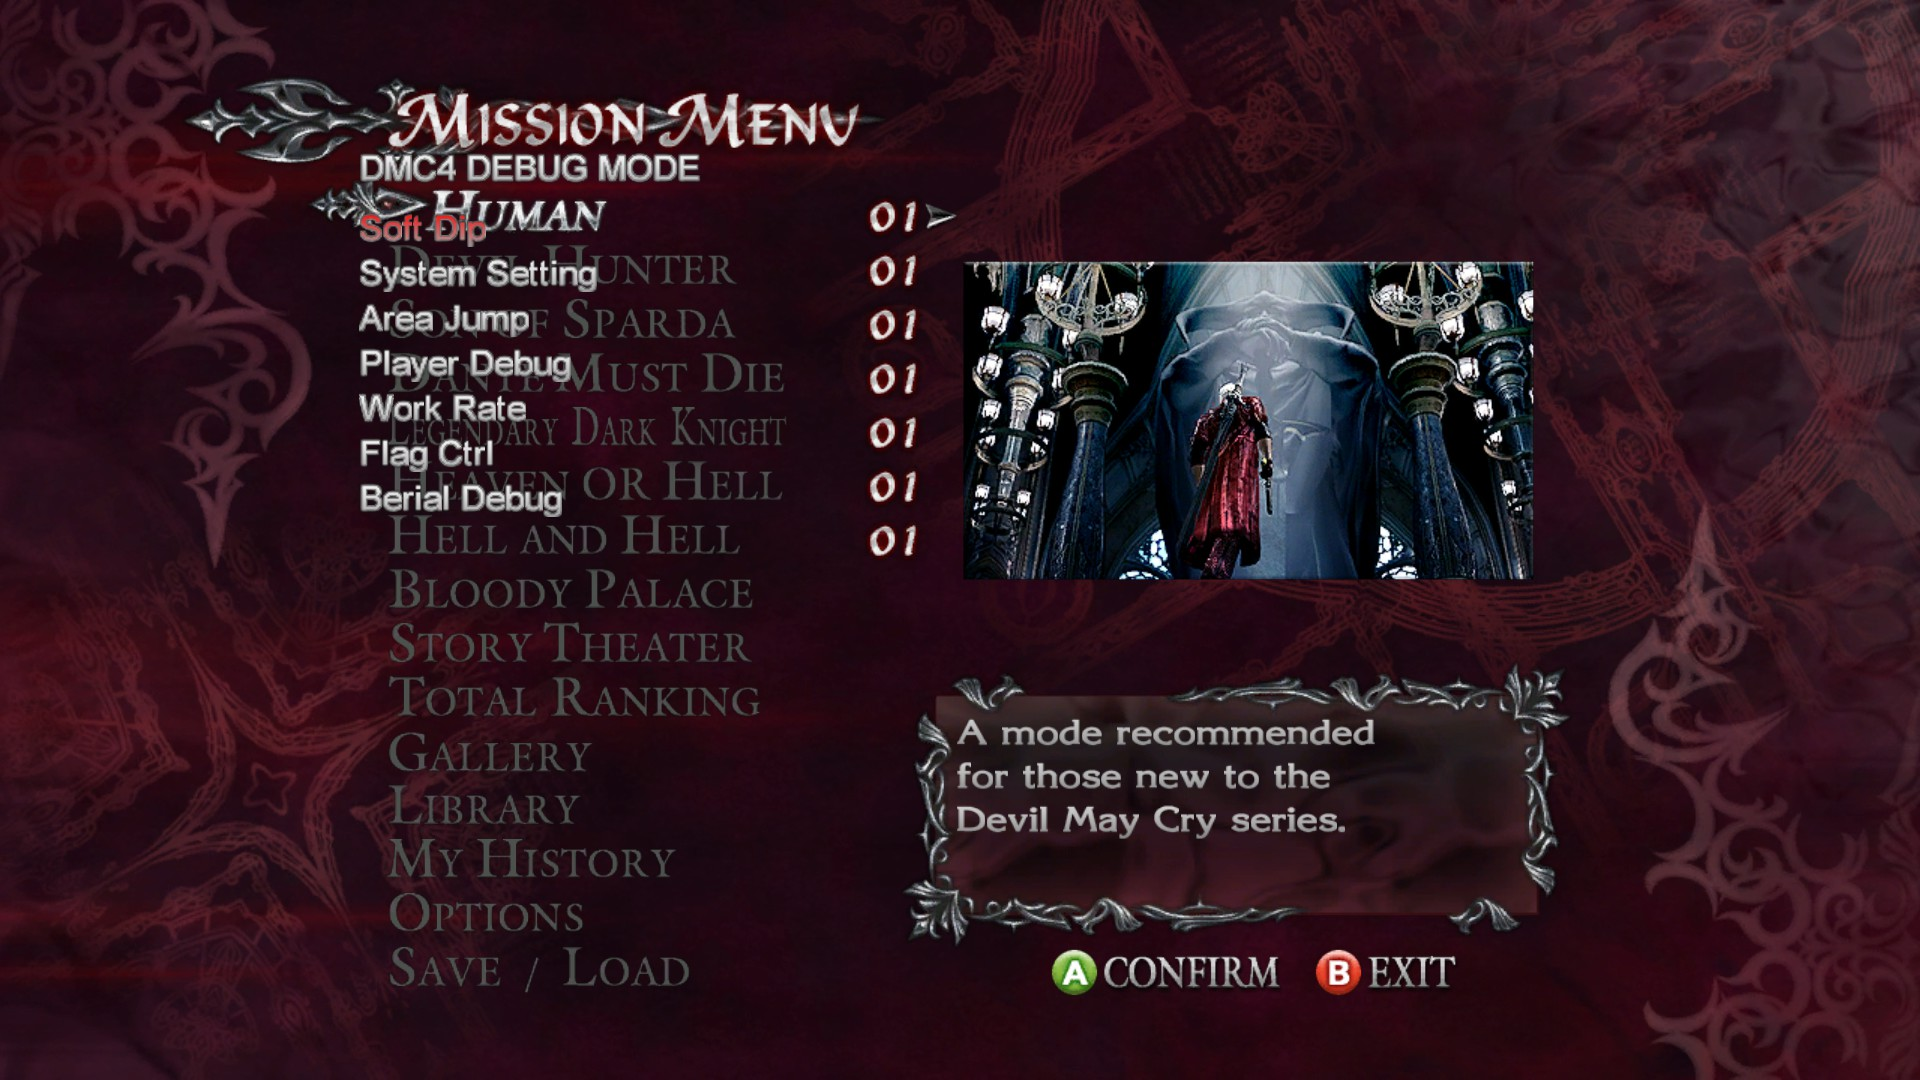 Devil may cry 4 special edition with dlc unlocker how to install.